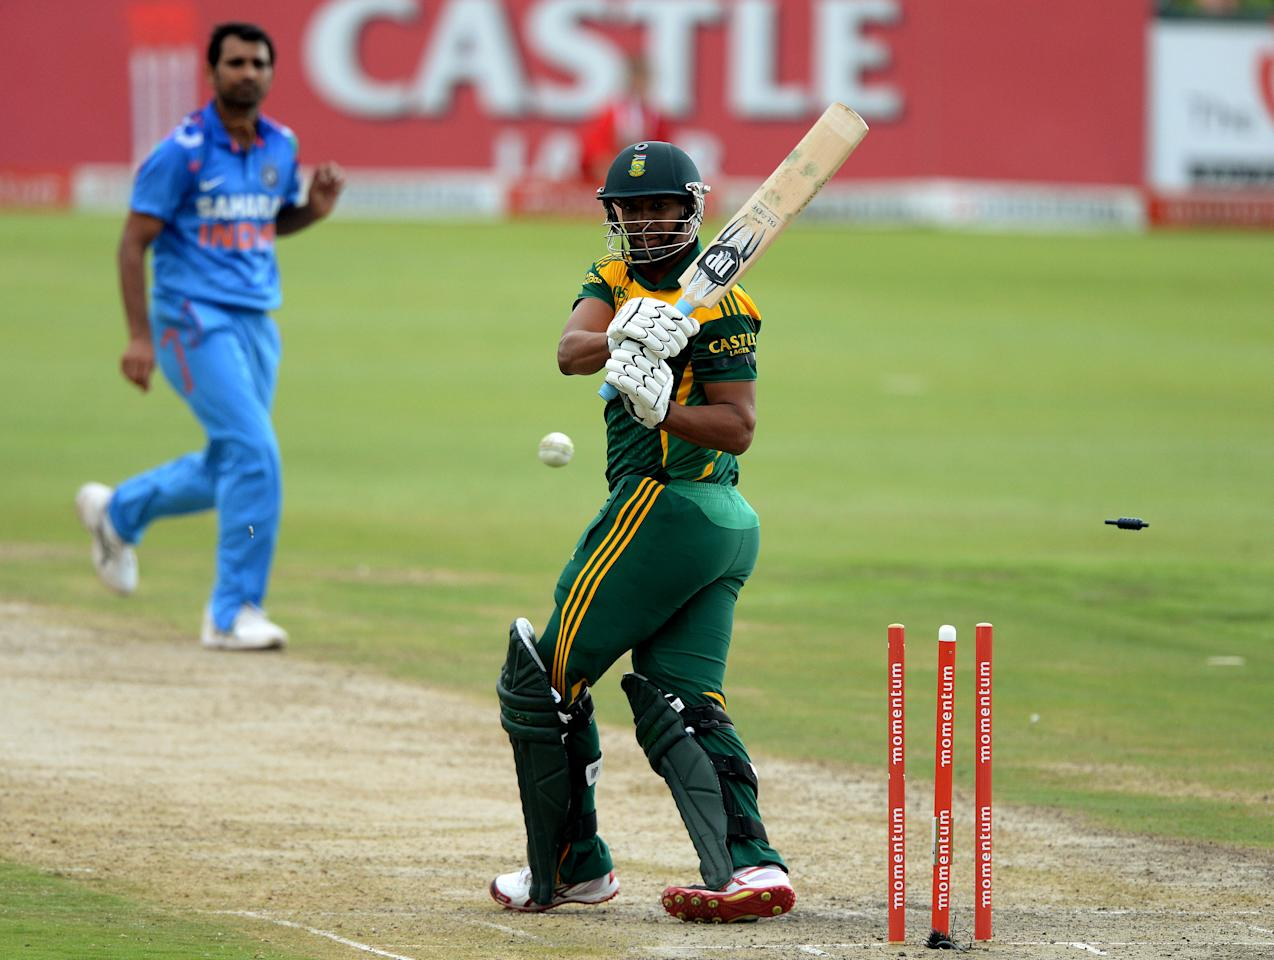 CENTURION, SOUTH AFRICA - DECEMBER 11: Verno Philander of South Africa is bowled out during the 3rd Momentum ODI match between South Africa and India at SuperSport Park on December 11, 2013 in Centurion, South Africa. (Photo by Duif du Toit/Gallo Images/Getty Images)